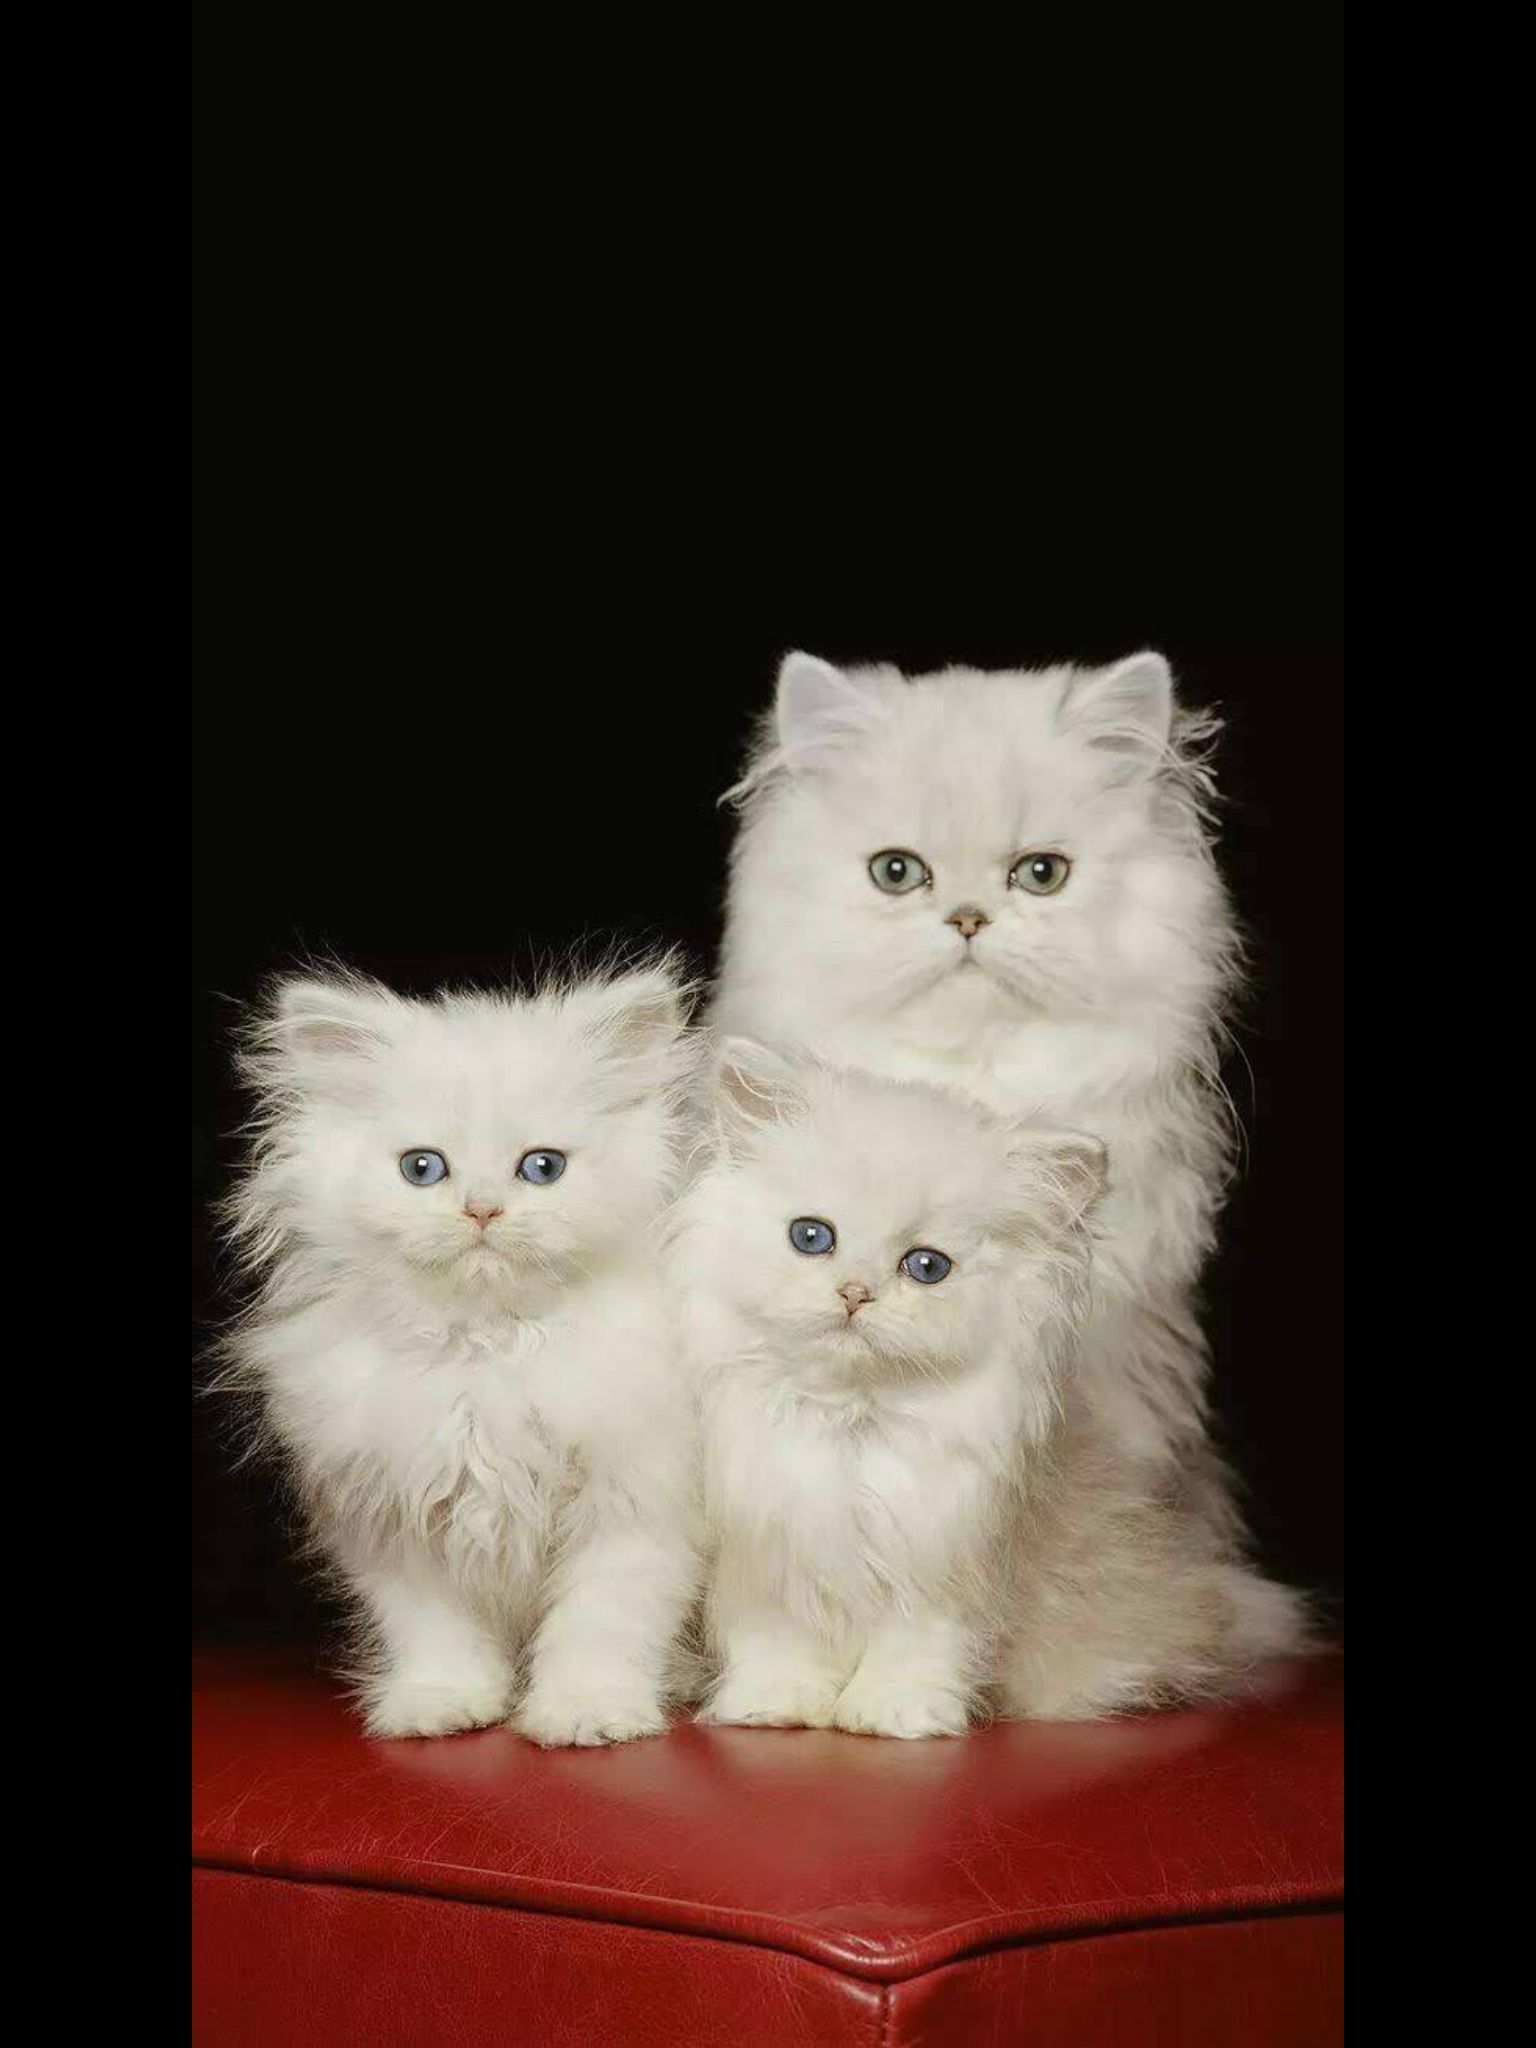 Pin By Barbara Stokley On Cats And Kittens Cats Pretty Cats Cute Cats